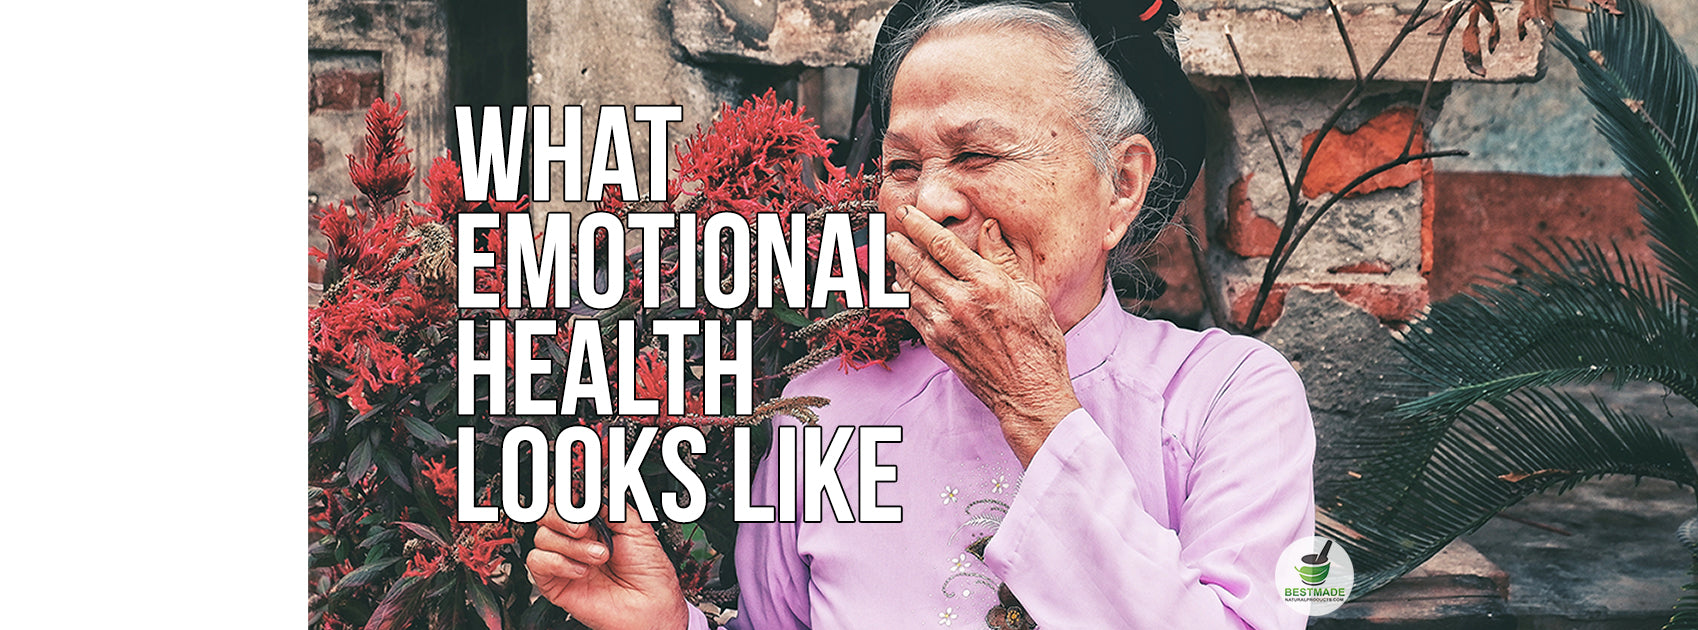 What Emotional Health Looks Like